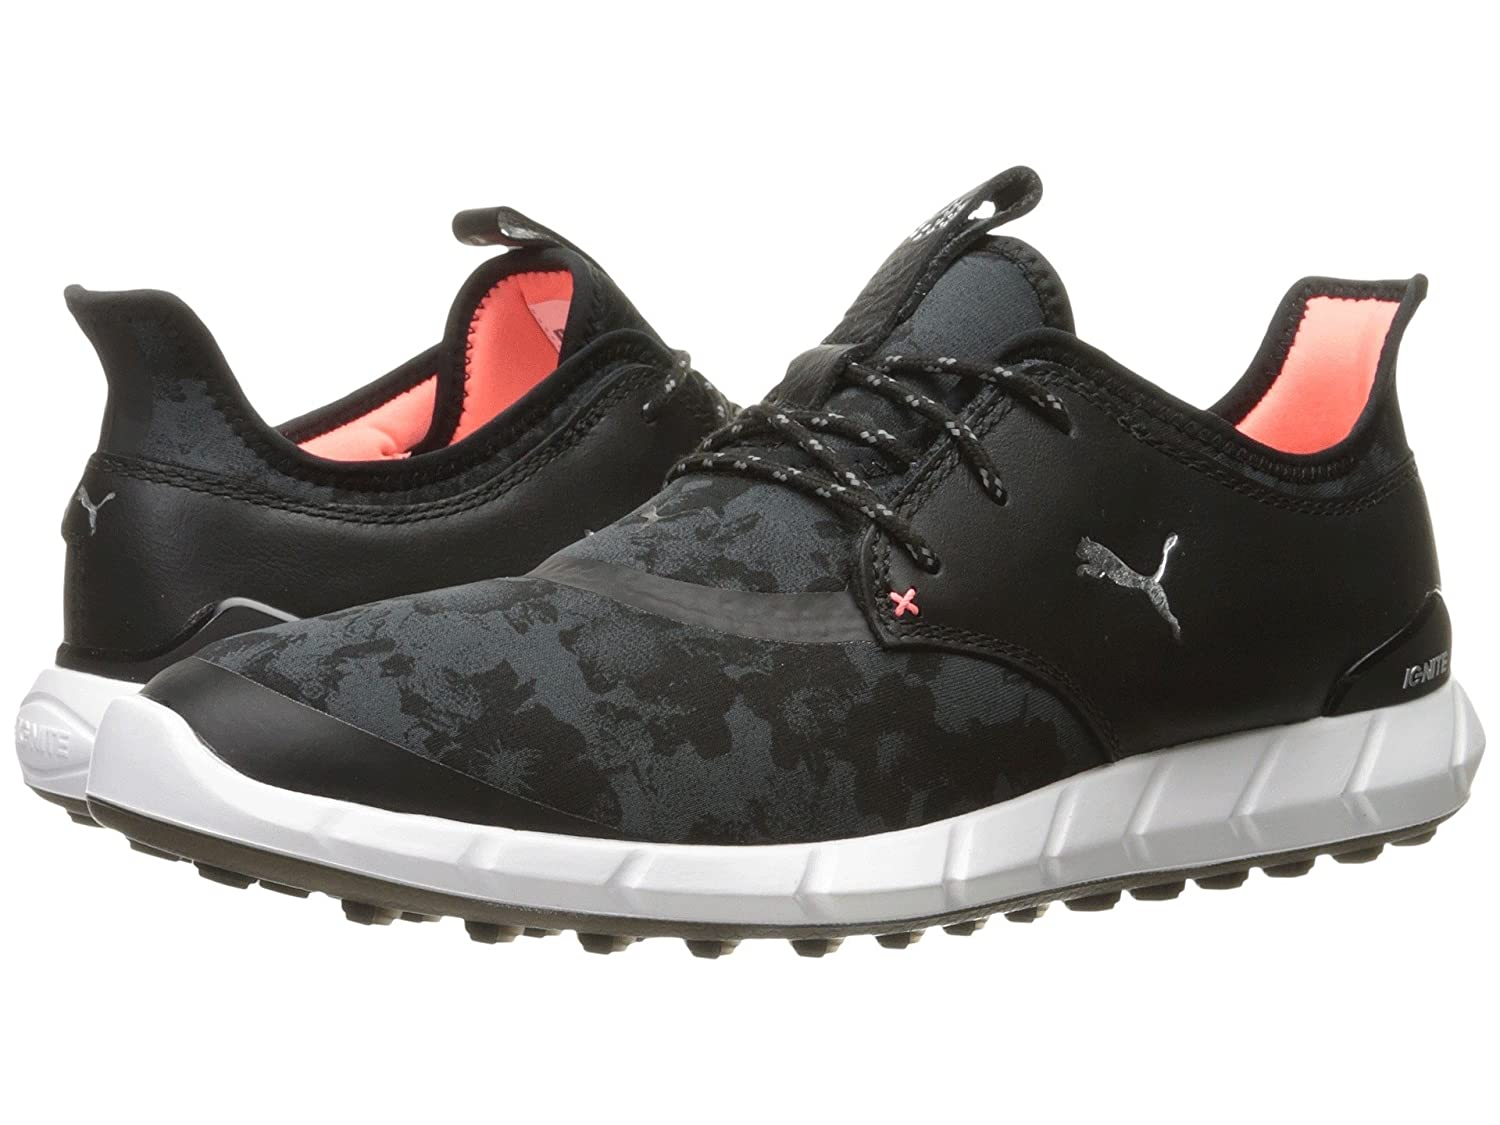 プーマ シューズ スニーカー Ignite Spikeless Sport Floral Black/Silv [並行輸入品]   B074CV4K51